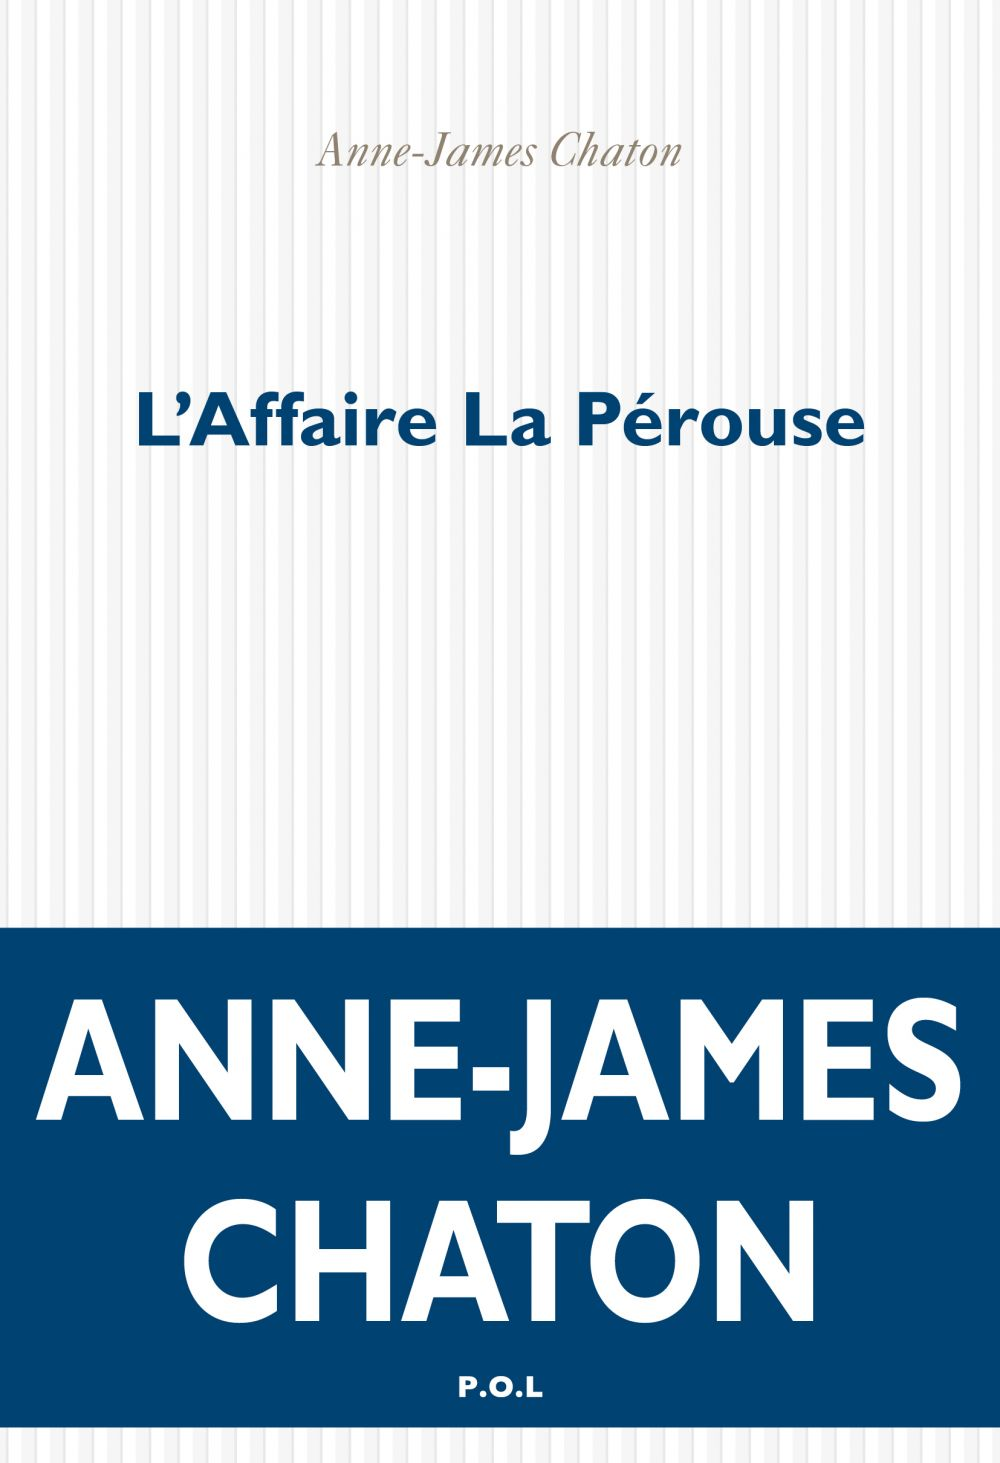 L'Affaire La Pérouse